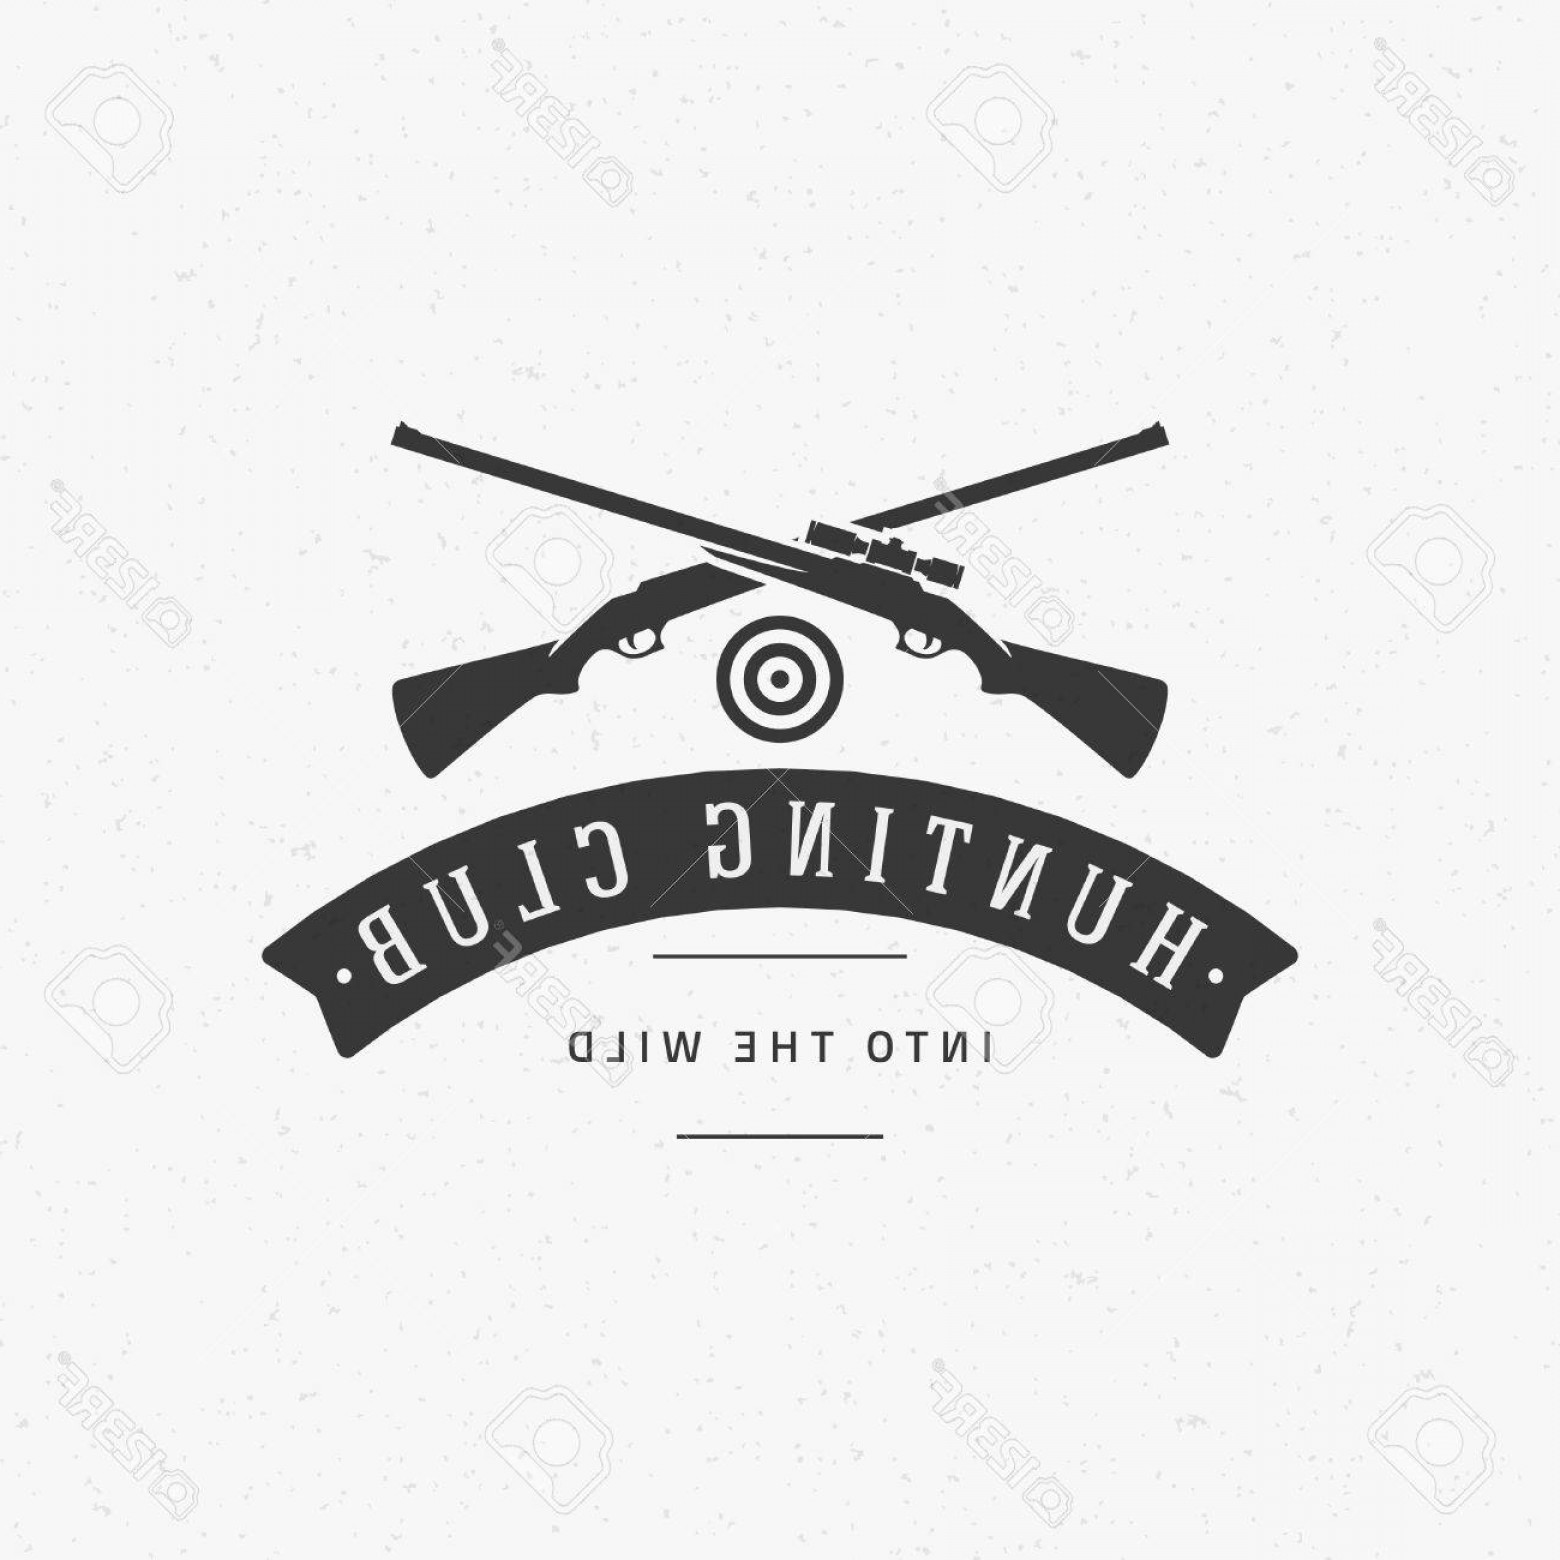 Hunting Rifle Vector Cross: Photostock Vector Hunting Club Vintage Logo Template Emblem Cross Guns And Target Silhouette Label Or Badge For Advert